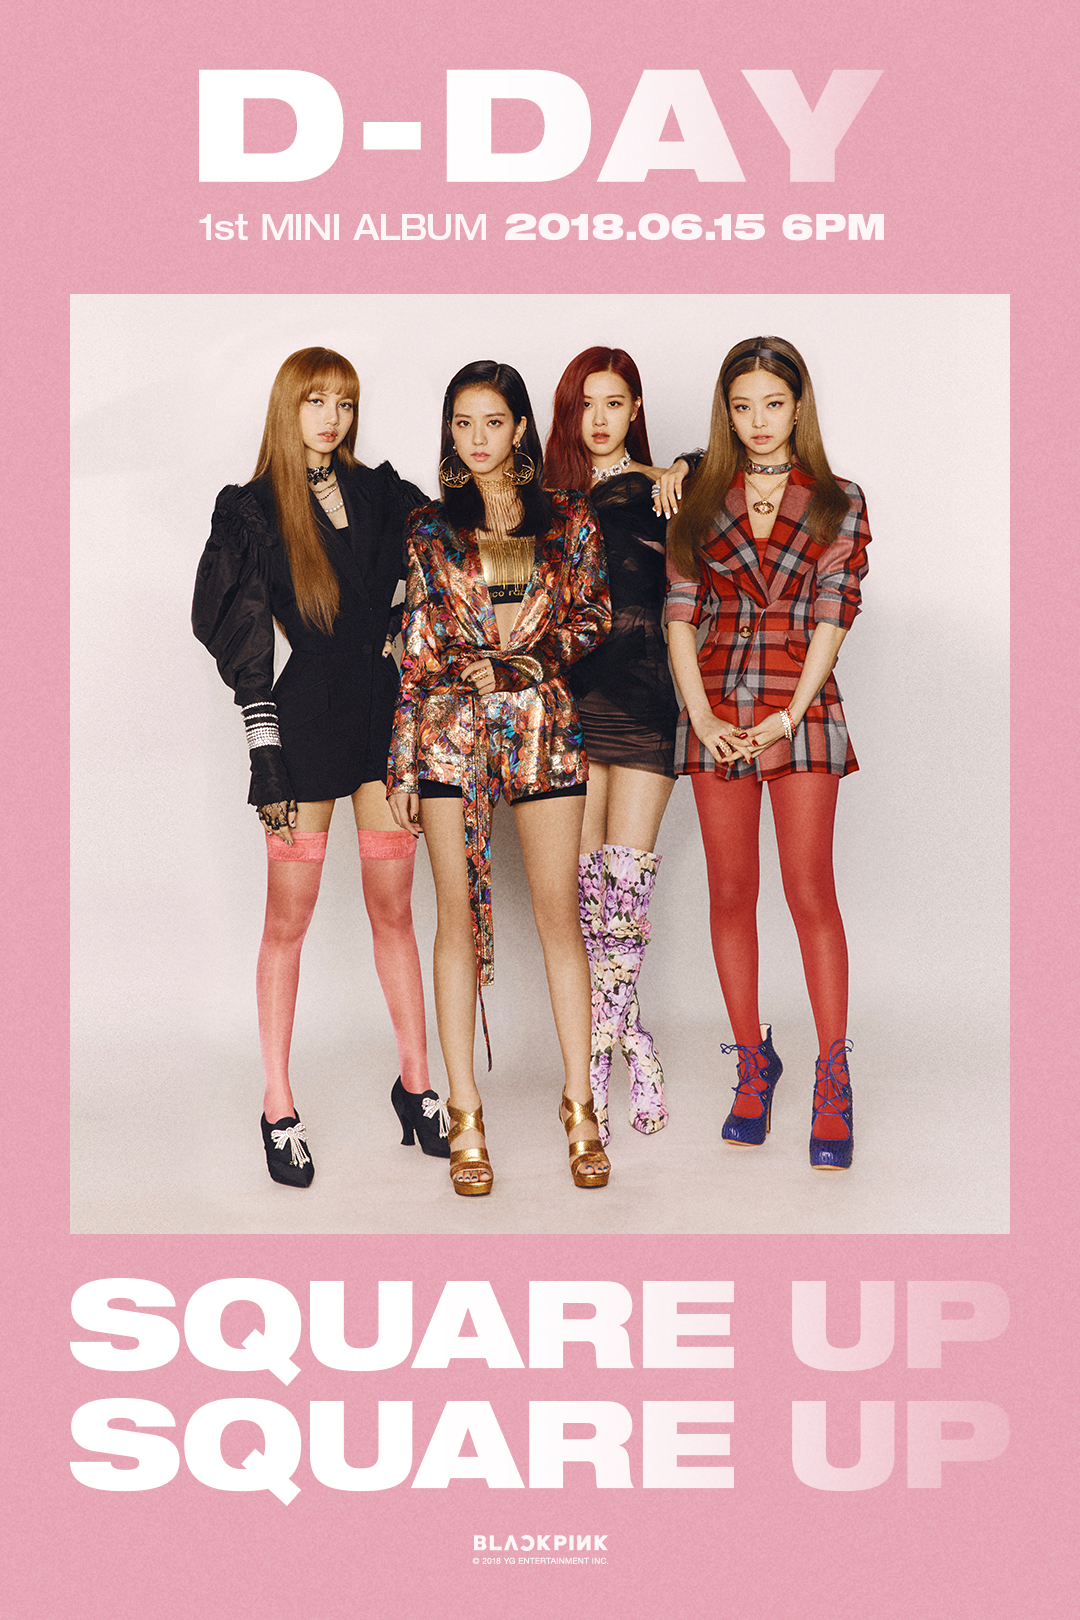 180615 BLACKPINK - 1st MINI ALBUM 'SQUARE UP' D-DAY POSTER